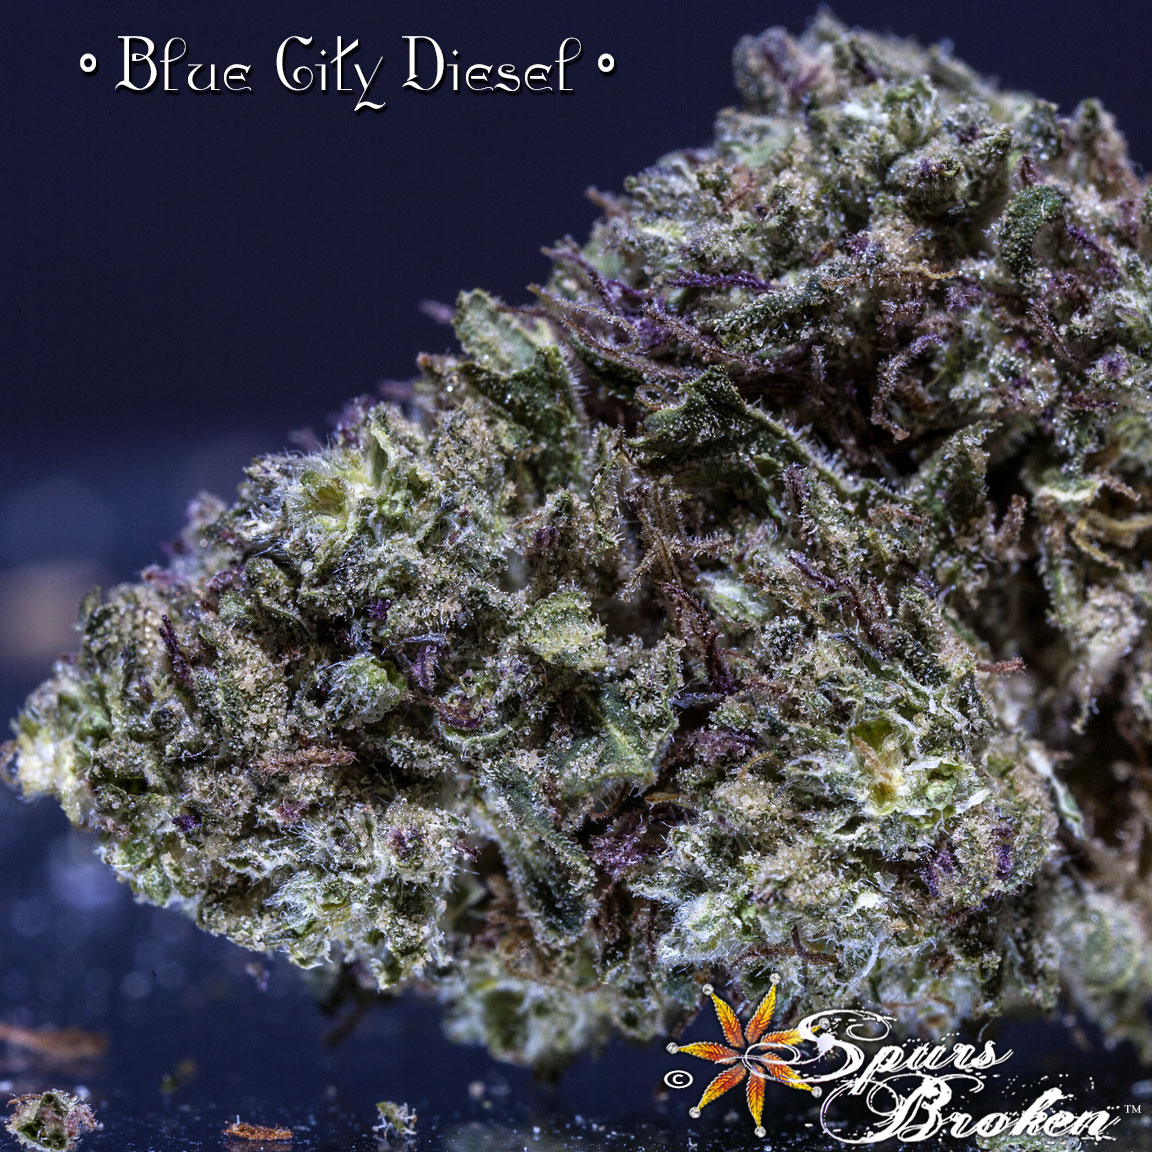 Blue City Diesel - Cannabis Macro Photography by Spurs Broken (Robert R. Sanders)